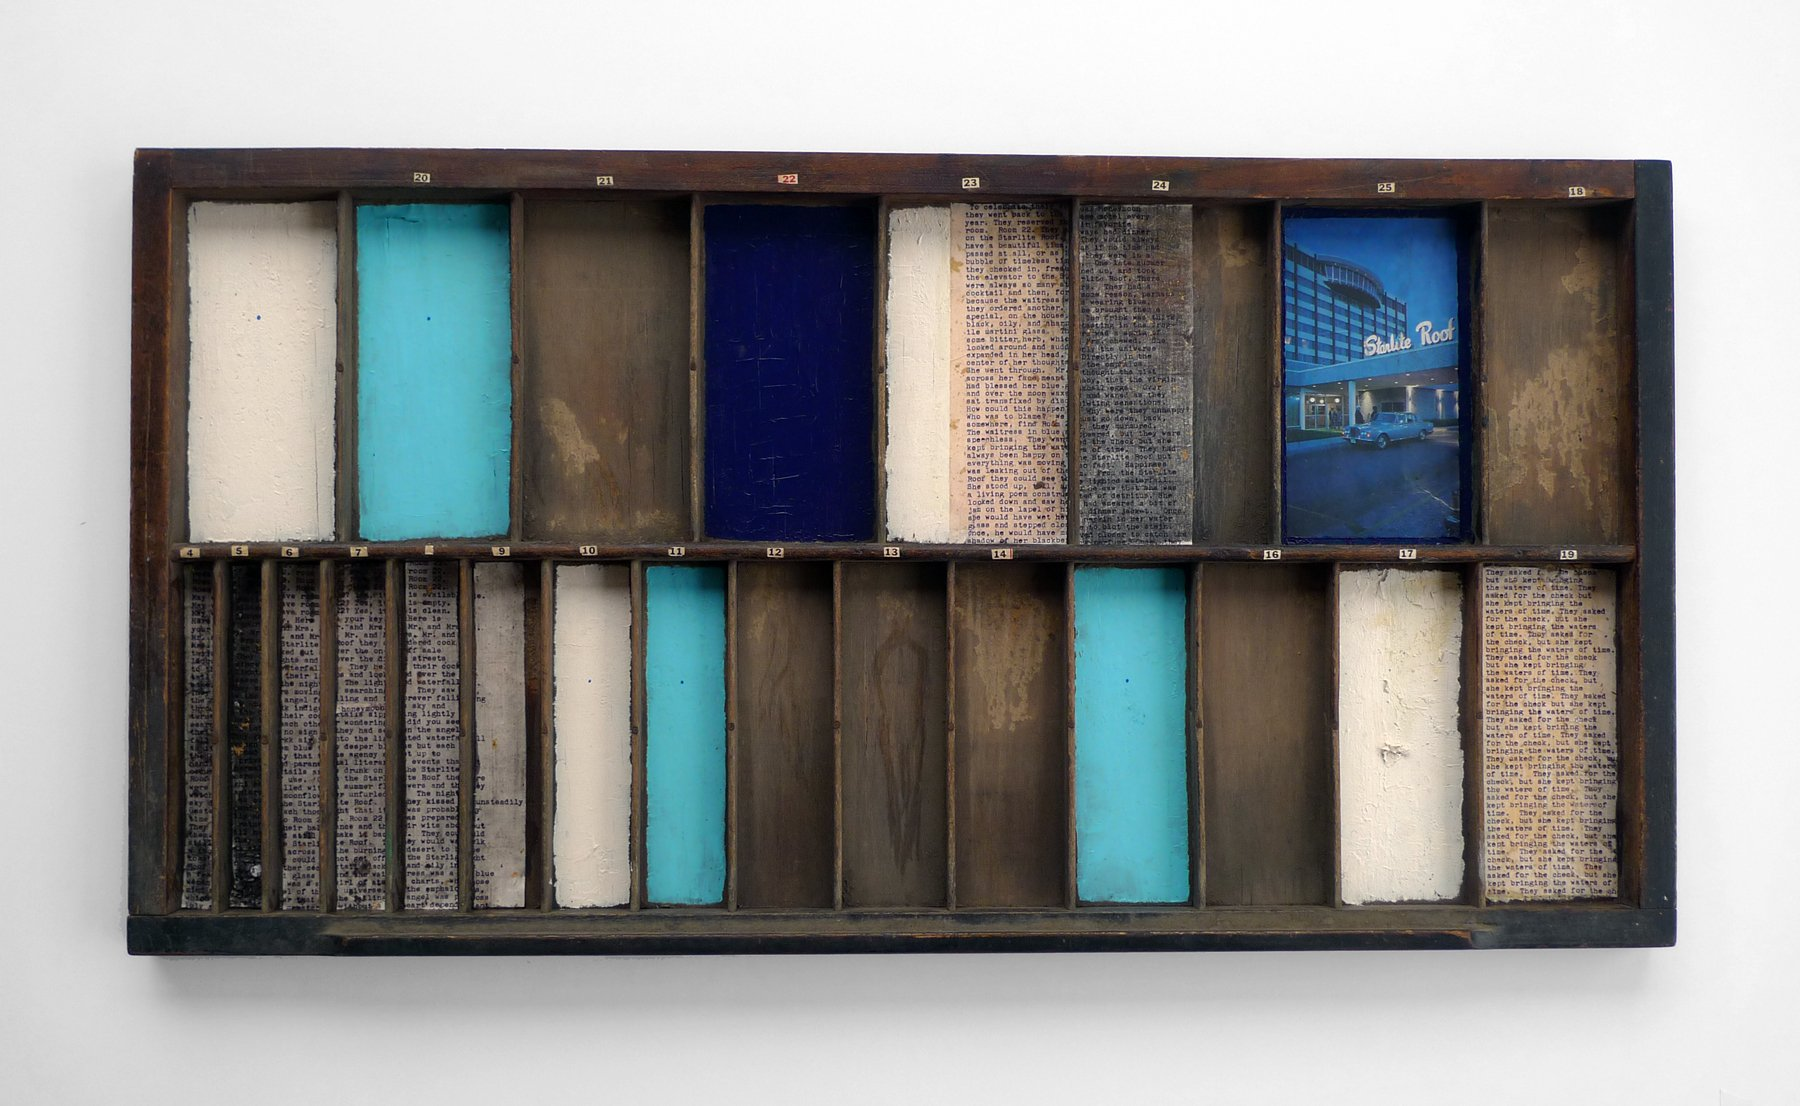 Room 22 by Louise Erdrich2015, 16.75 x 32 inches, mixed media on found object